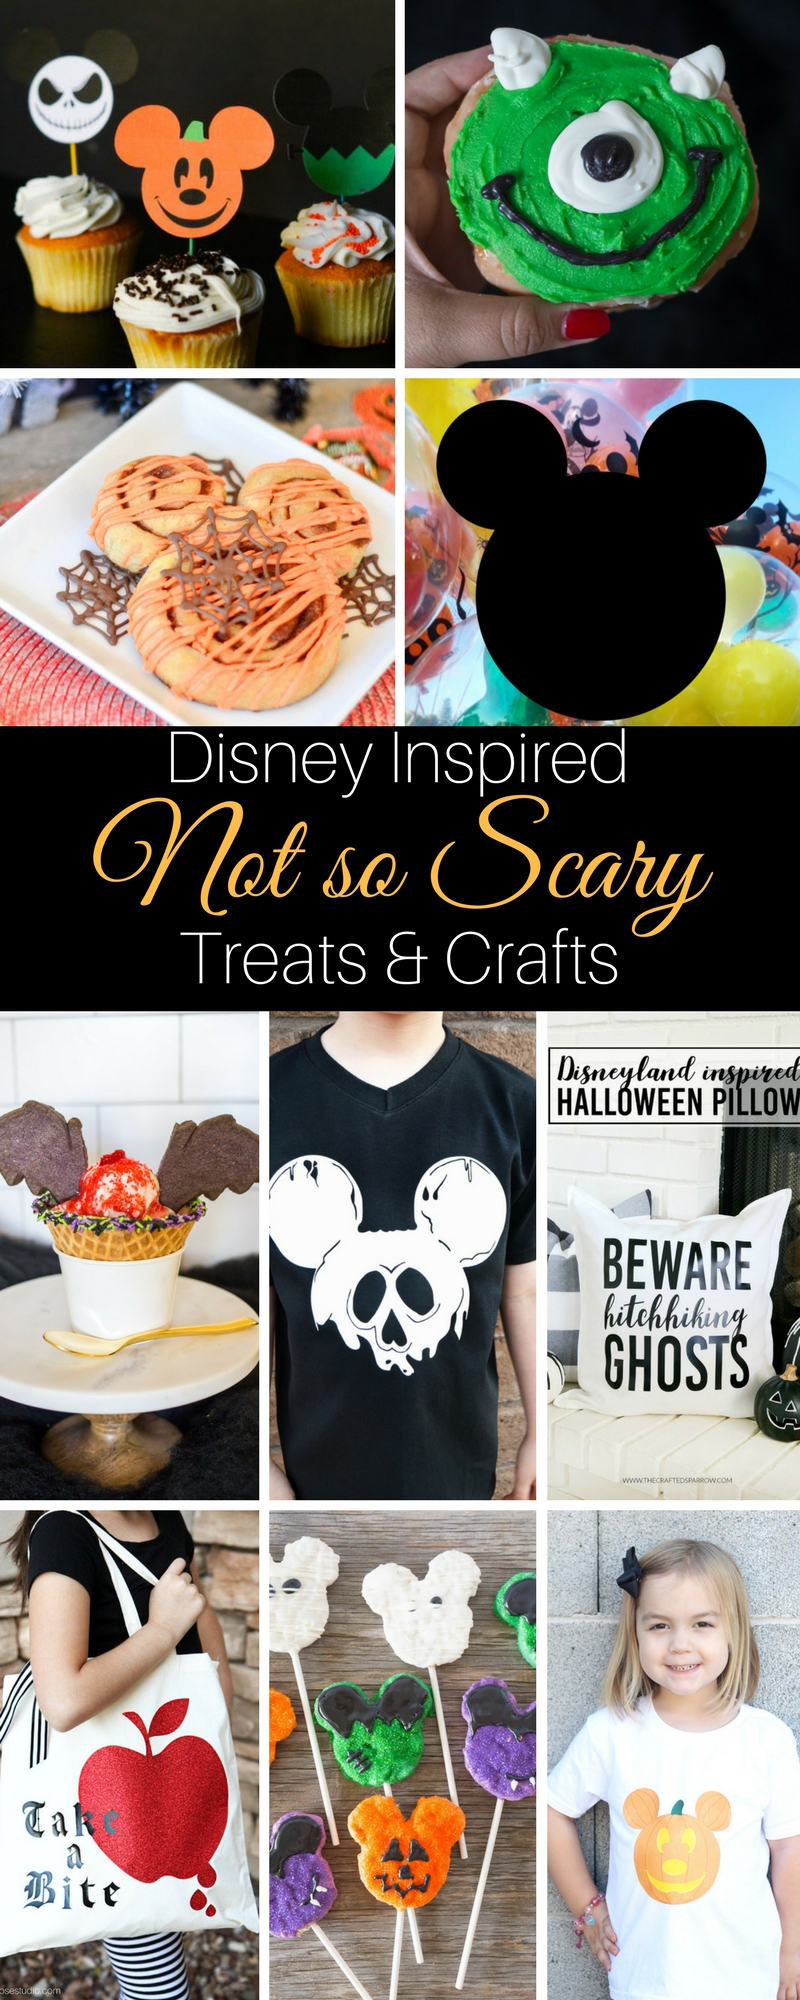 Lovin' these Disney Inspired Not So Scary Treats & Crafts